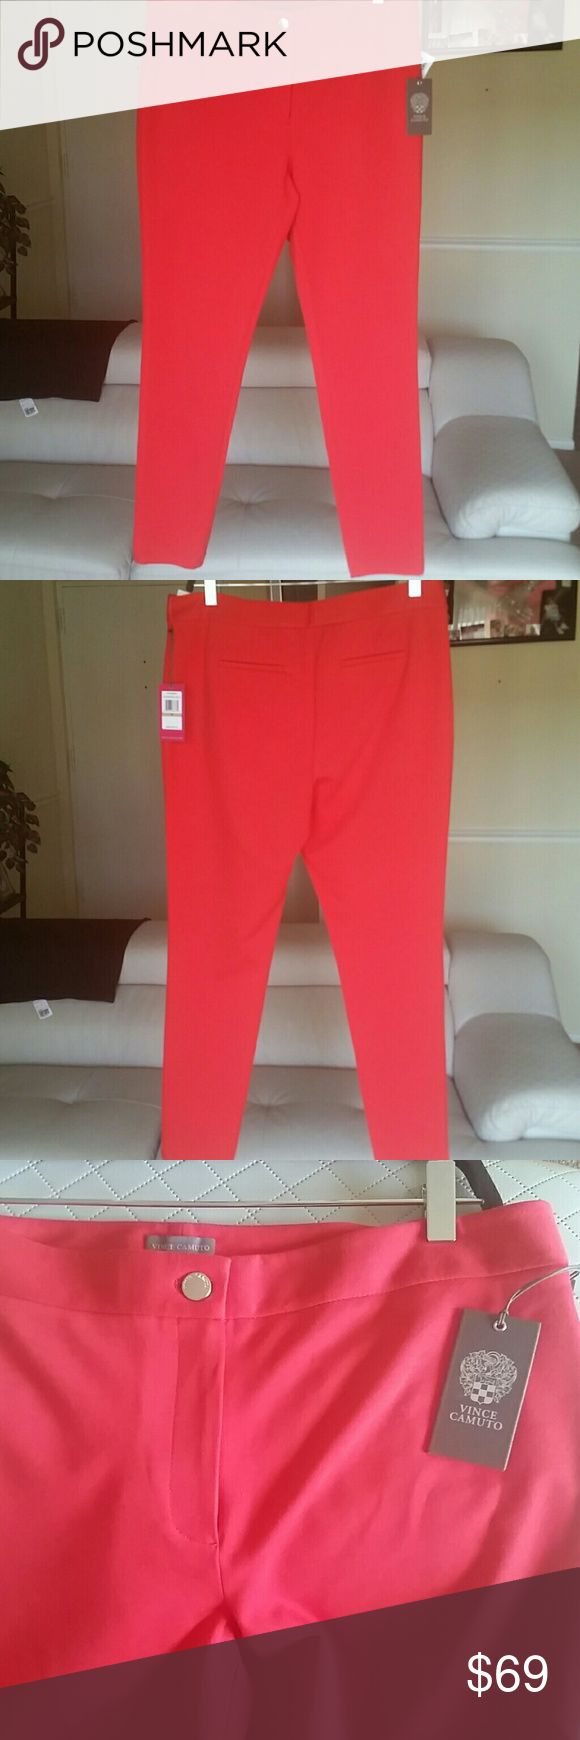 VINCE CAMUTO Skinny  RIPE TOMATO PANT ( SIZE 12 ) Vince Camuto Women Skinny pant with buttoned, zipper closure, two pockets in the back,  SIZE 12..67% VISCOSE, 28% NYLON, 5% elastane. Machine wash. .NEVER WORN Vince Camuto Pants Skinny